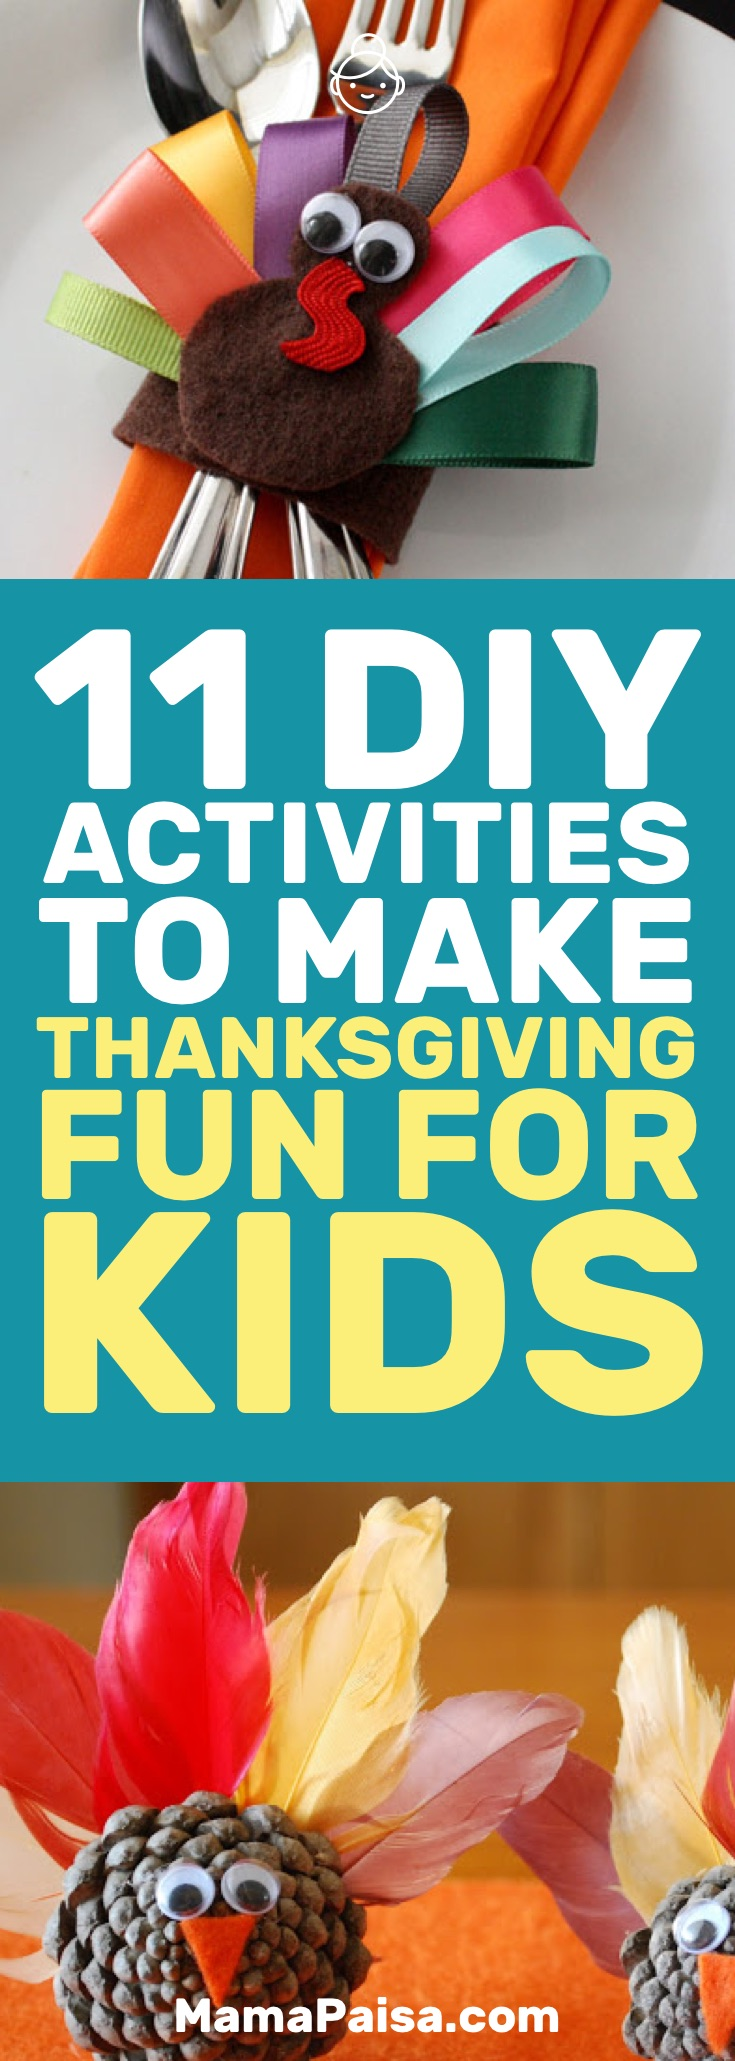 11 DIY Activities to Make Thanksgiving Fun for Kids